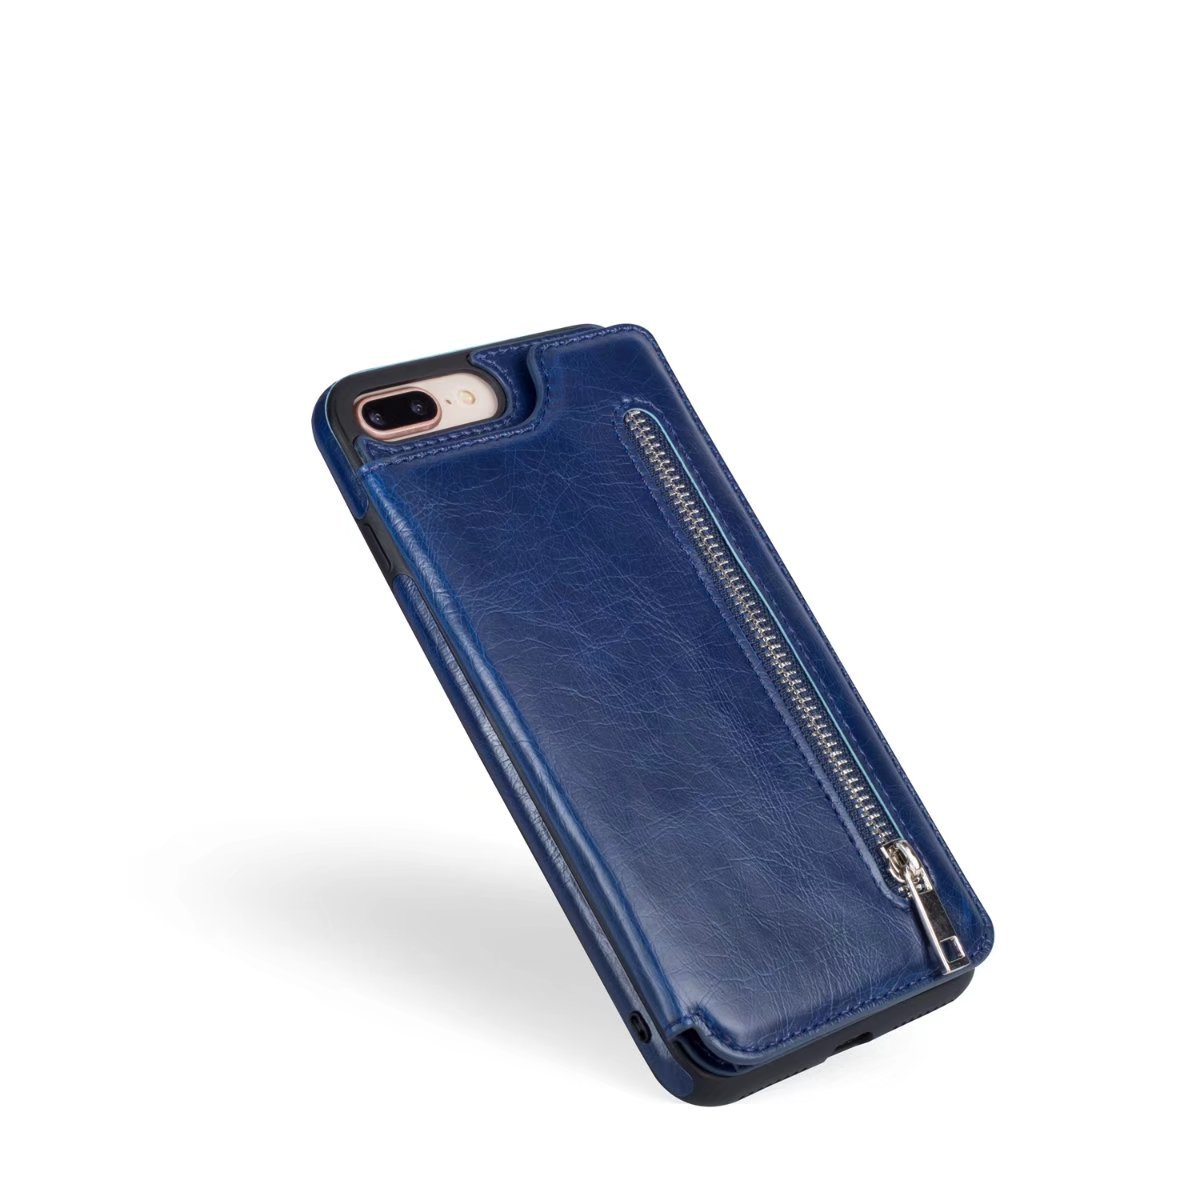 Abtory iPhone 8 Plus Case, Wallet Case with Credit Card Holder Slim Leather Shockproof Protective Hybrid Case with Stand Phone Case for iPhone 7 Plus/iPhone 8 Plus Blue by Abtory (Image #4)